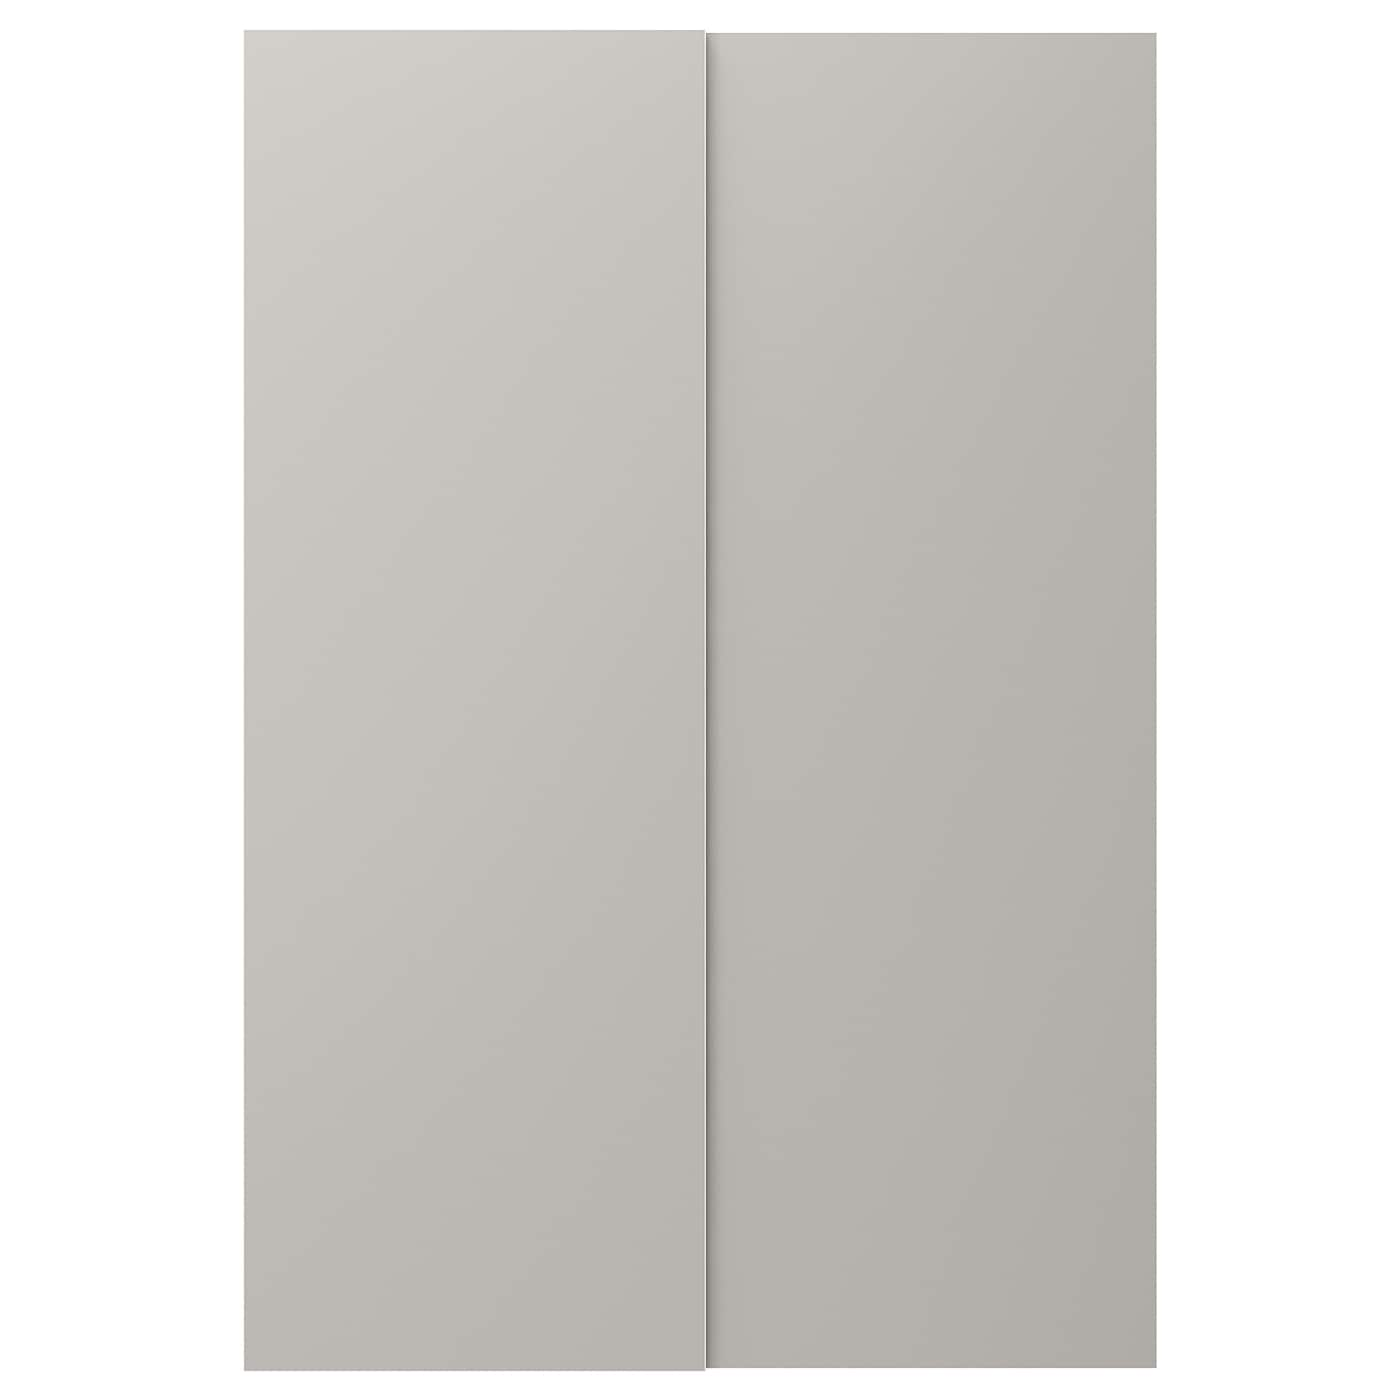 IKEA SKATVAL pair of sliding doors